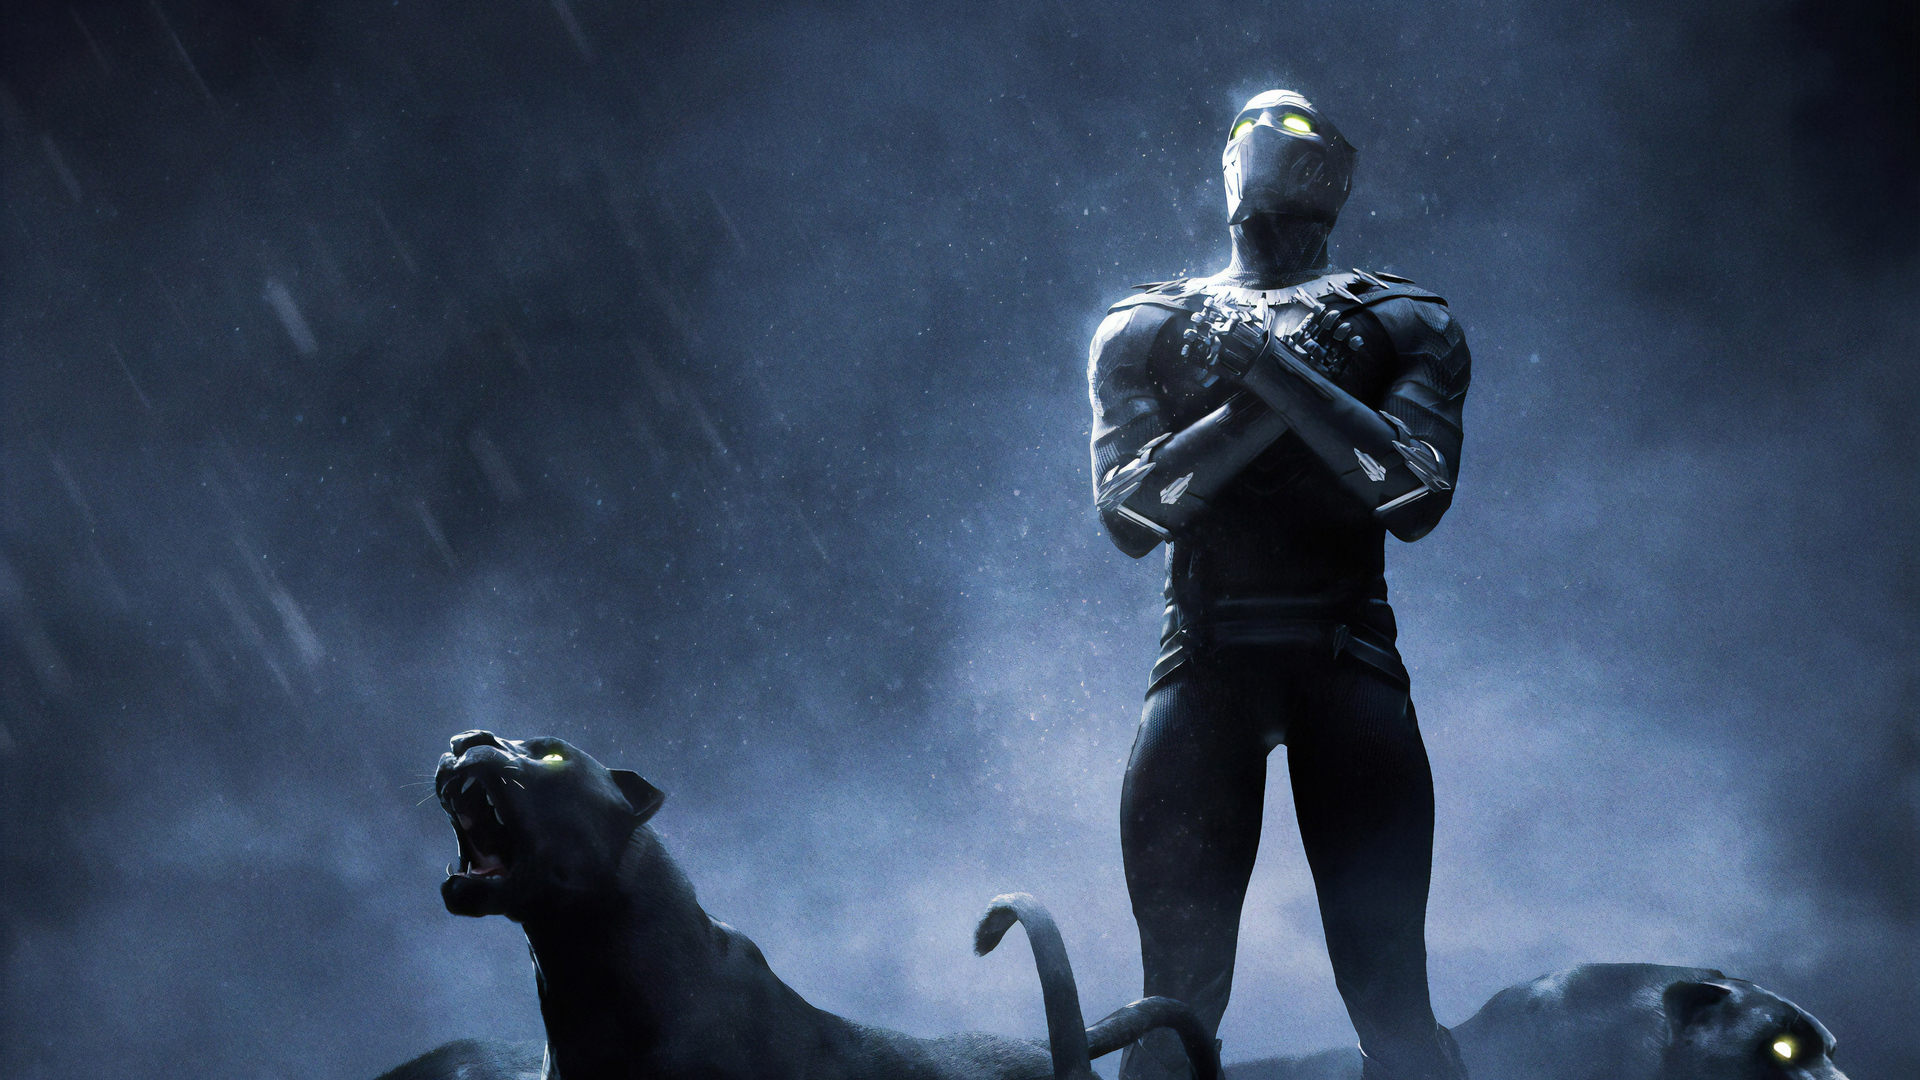 1920x1080 Black Panther 4k Rise Up Laptop Full Hd 1080p Hd 4k Wallpapers Images Backgrounds Photos And Pictures